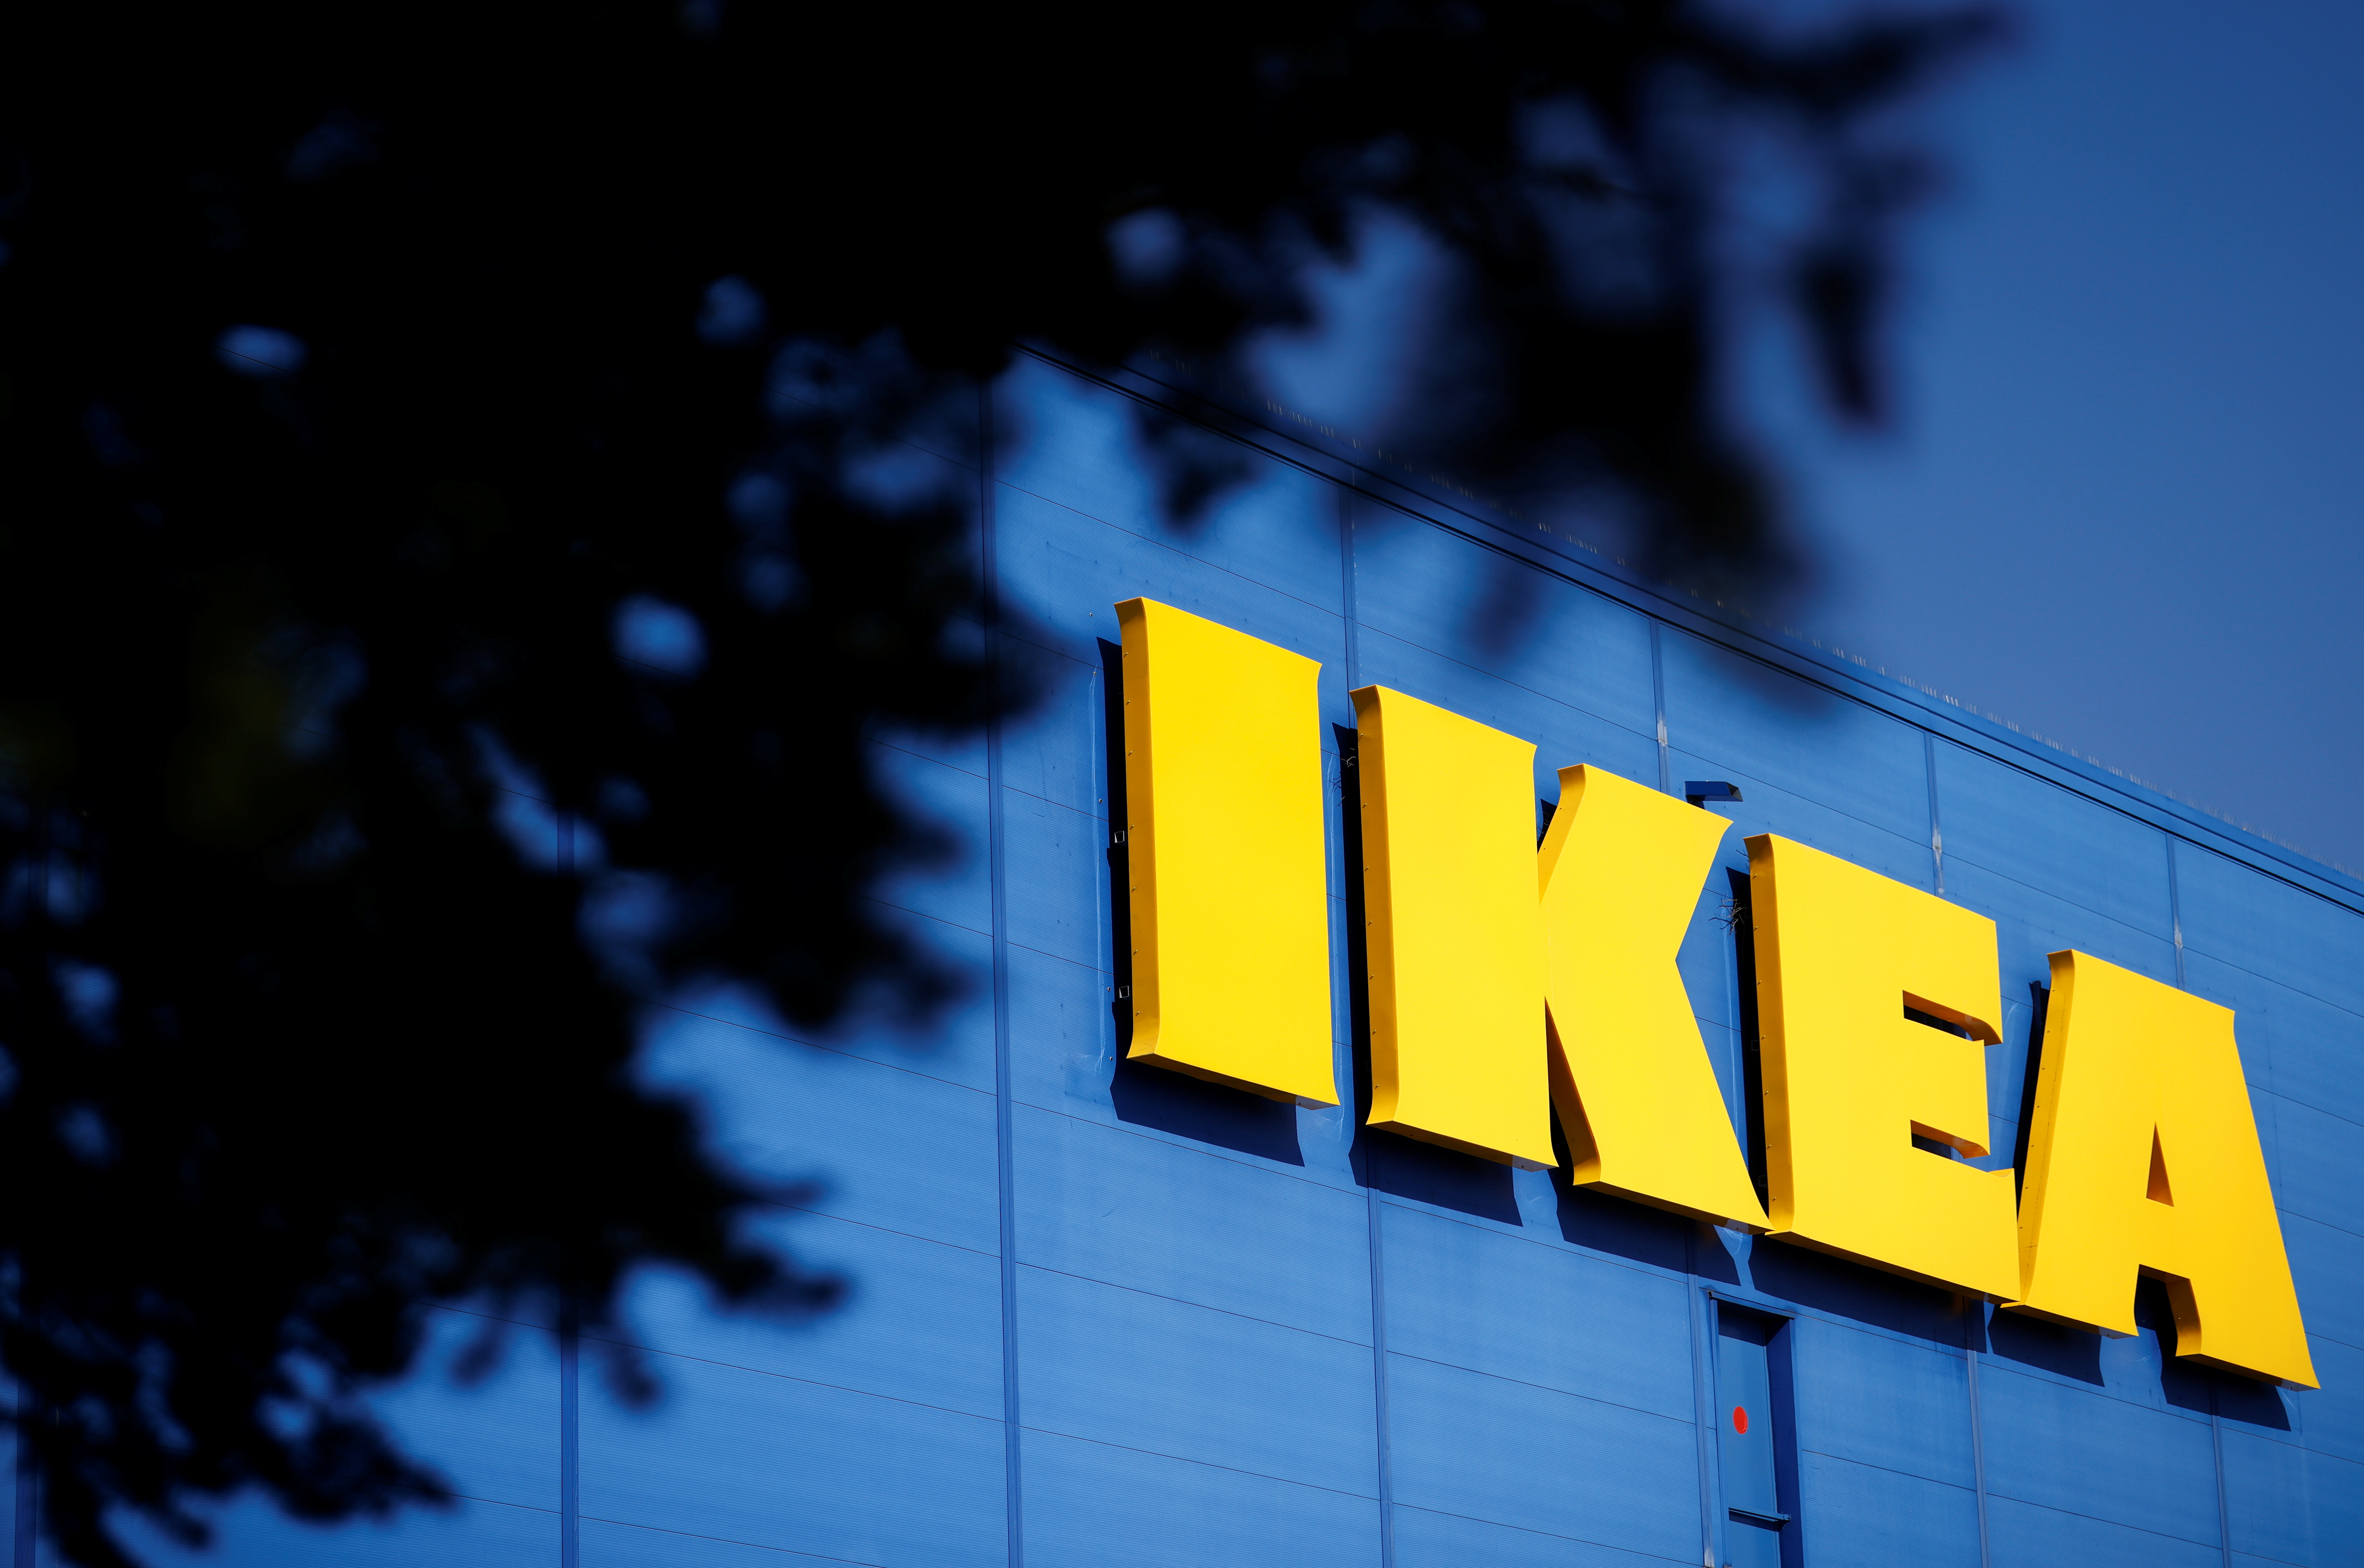 The company's logo is seen outside of an IKEA Group store in Saint-Herblain near Nantes, France, March 22, 2021. REUTERS/Stephane Mahe/Files